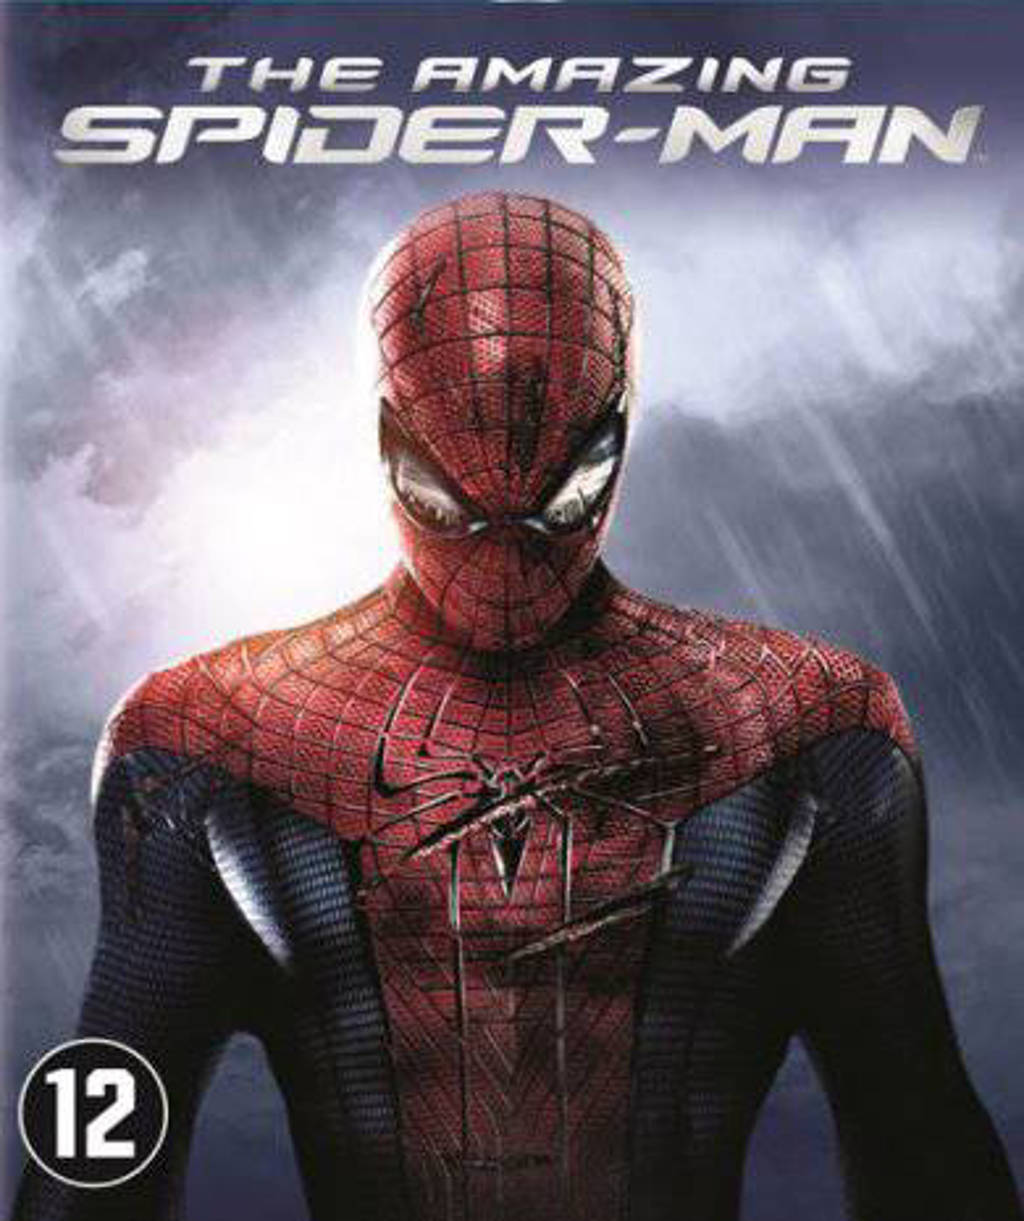 Amazing Spider-man (Collectors edition) (Blu-ray)